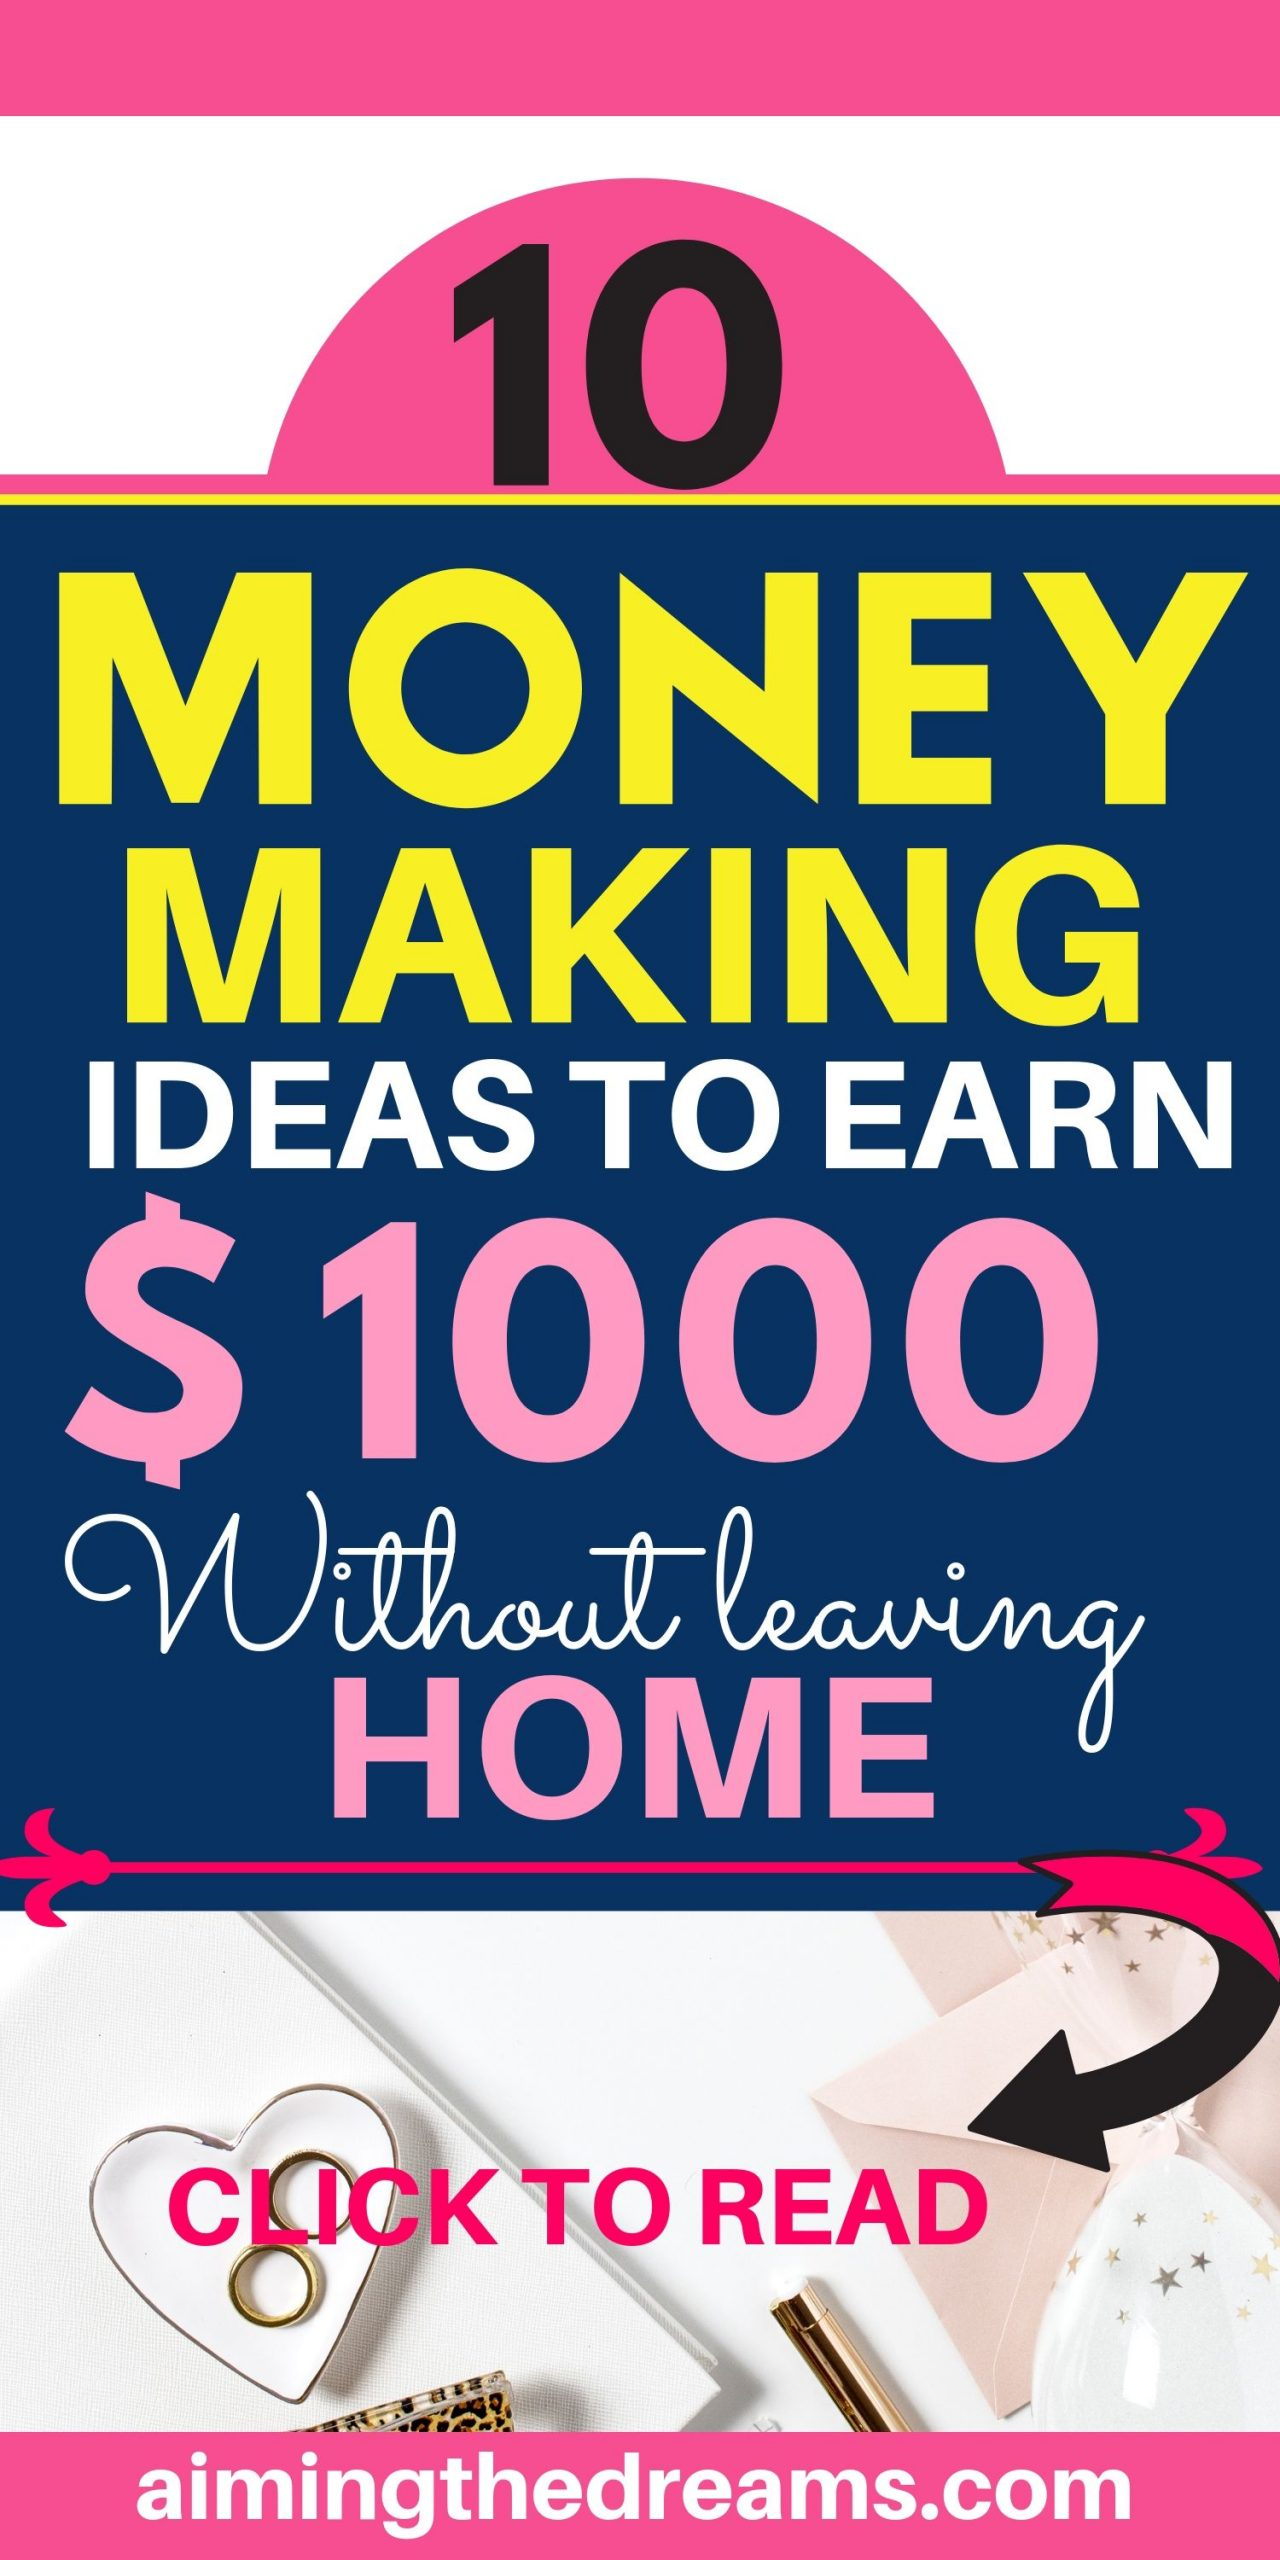 10 Money making ideas to make $1000 without leaving home.